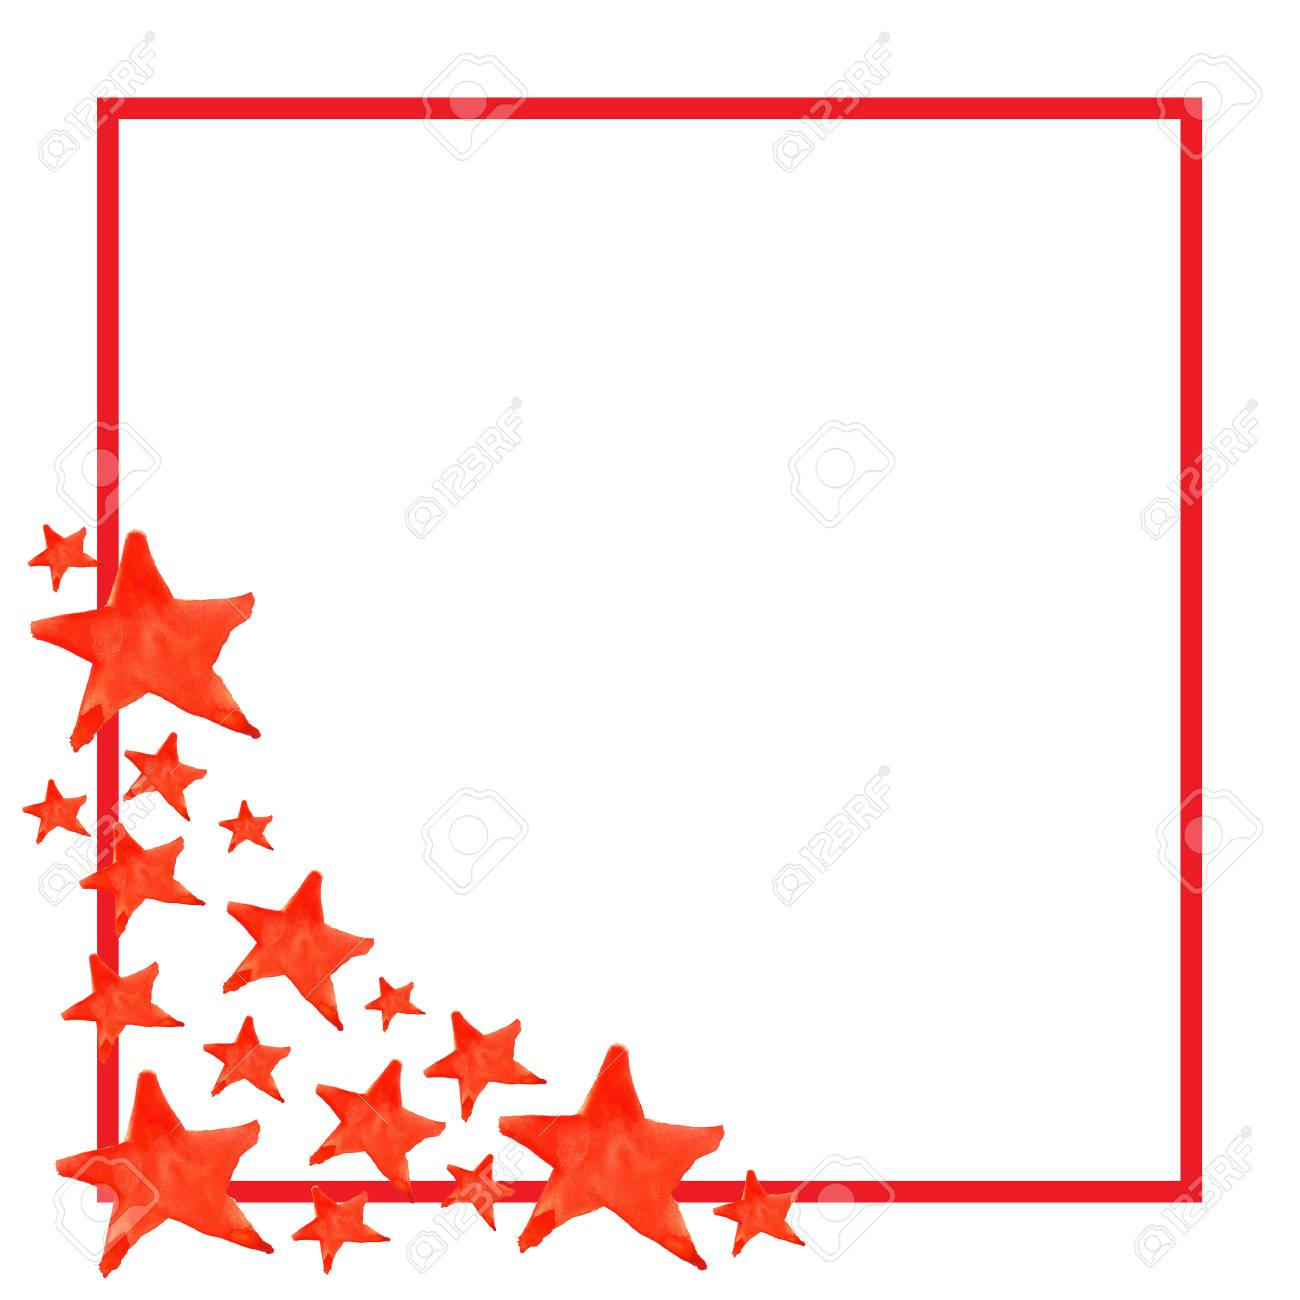 Watercolor Five Pointed Star Symbol Frame Template Background. Stock ...